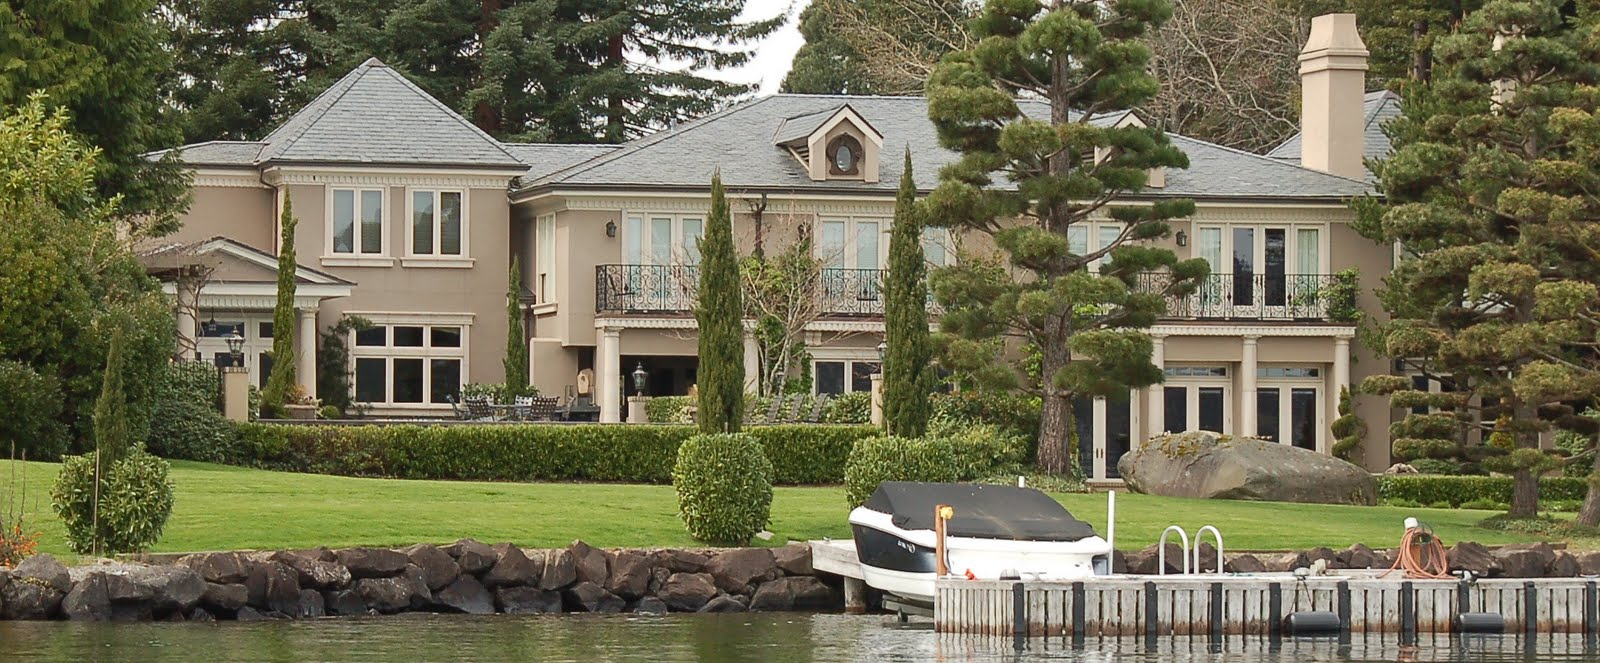 Seattle mansions russo hunts point mansion sells for 11 for Most expensive homes in washington state